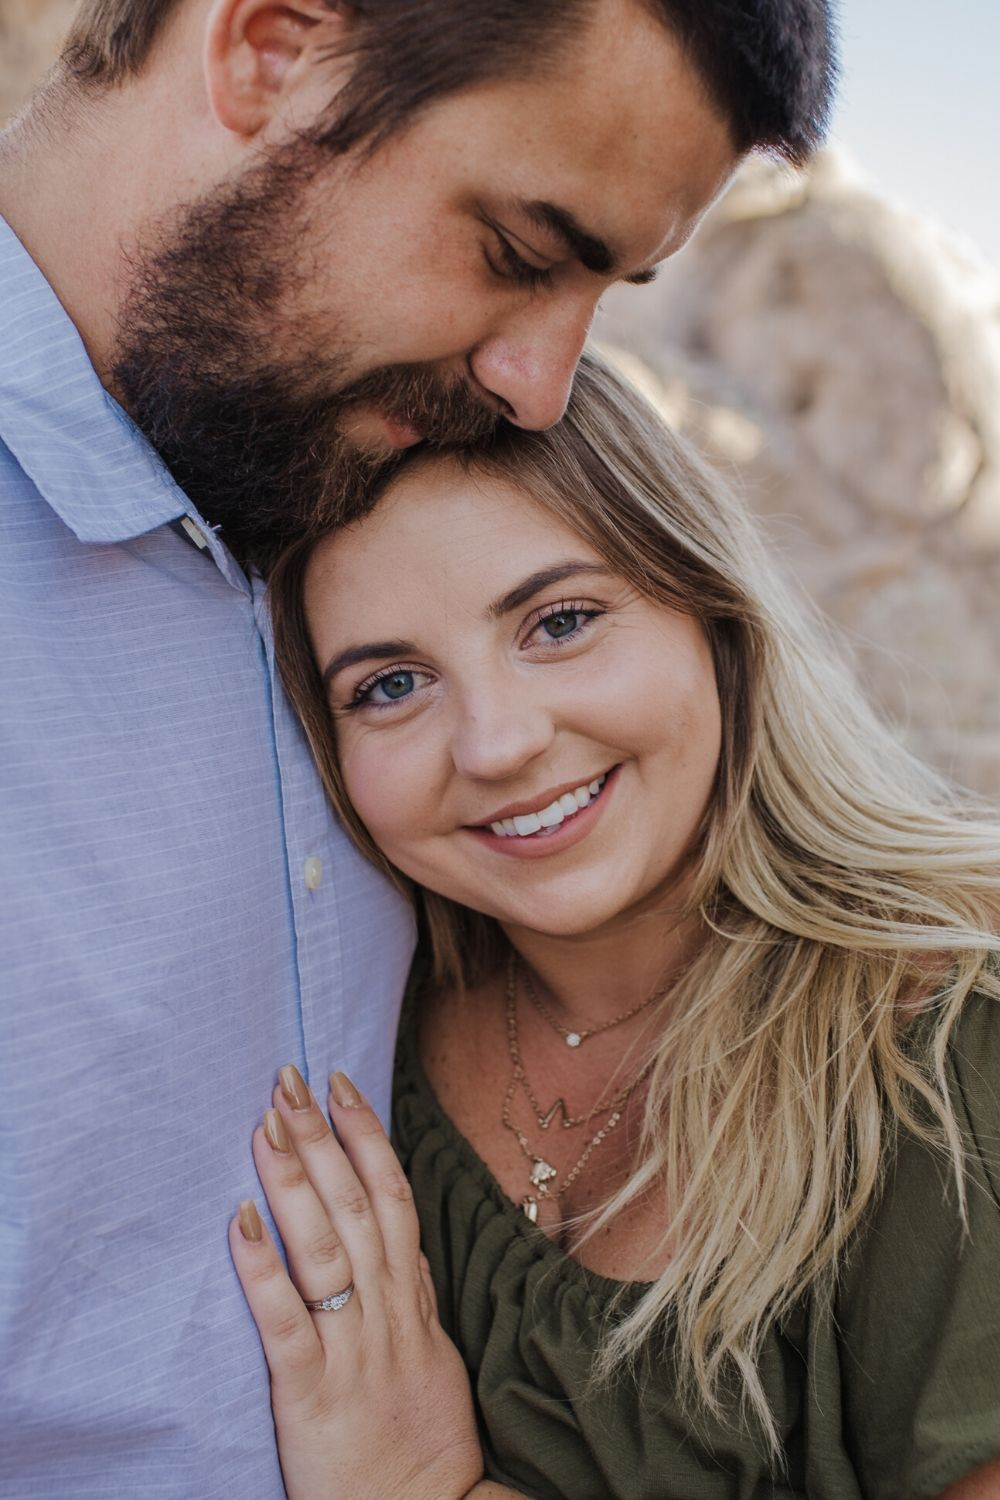 couples and engagement photo shoot ideas